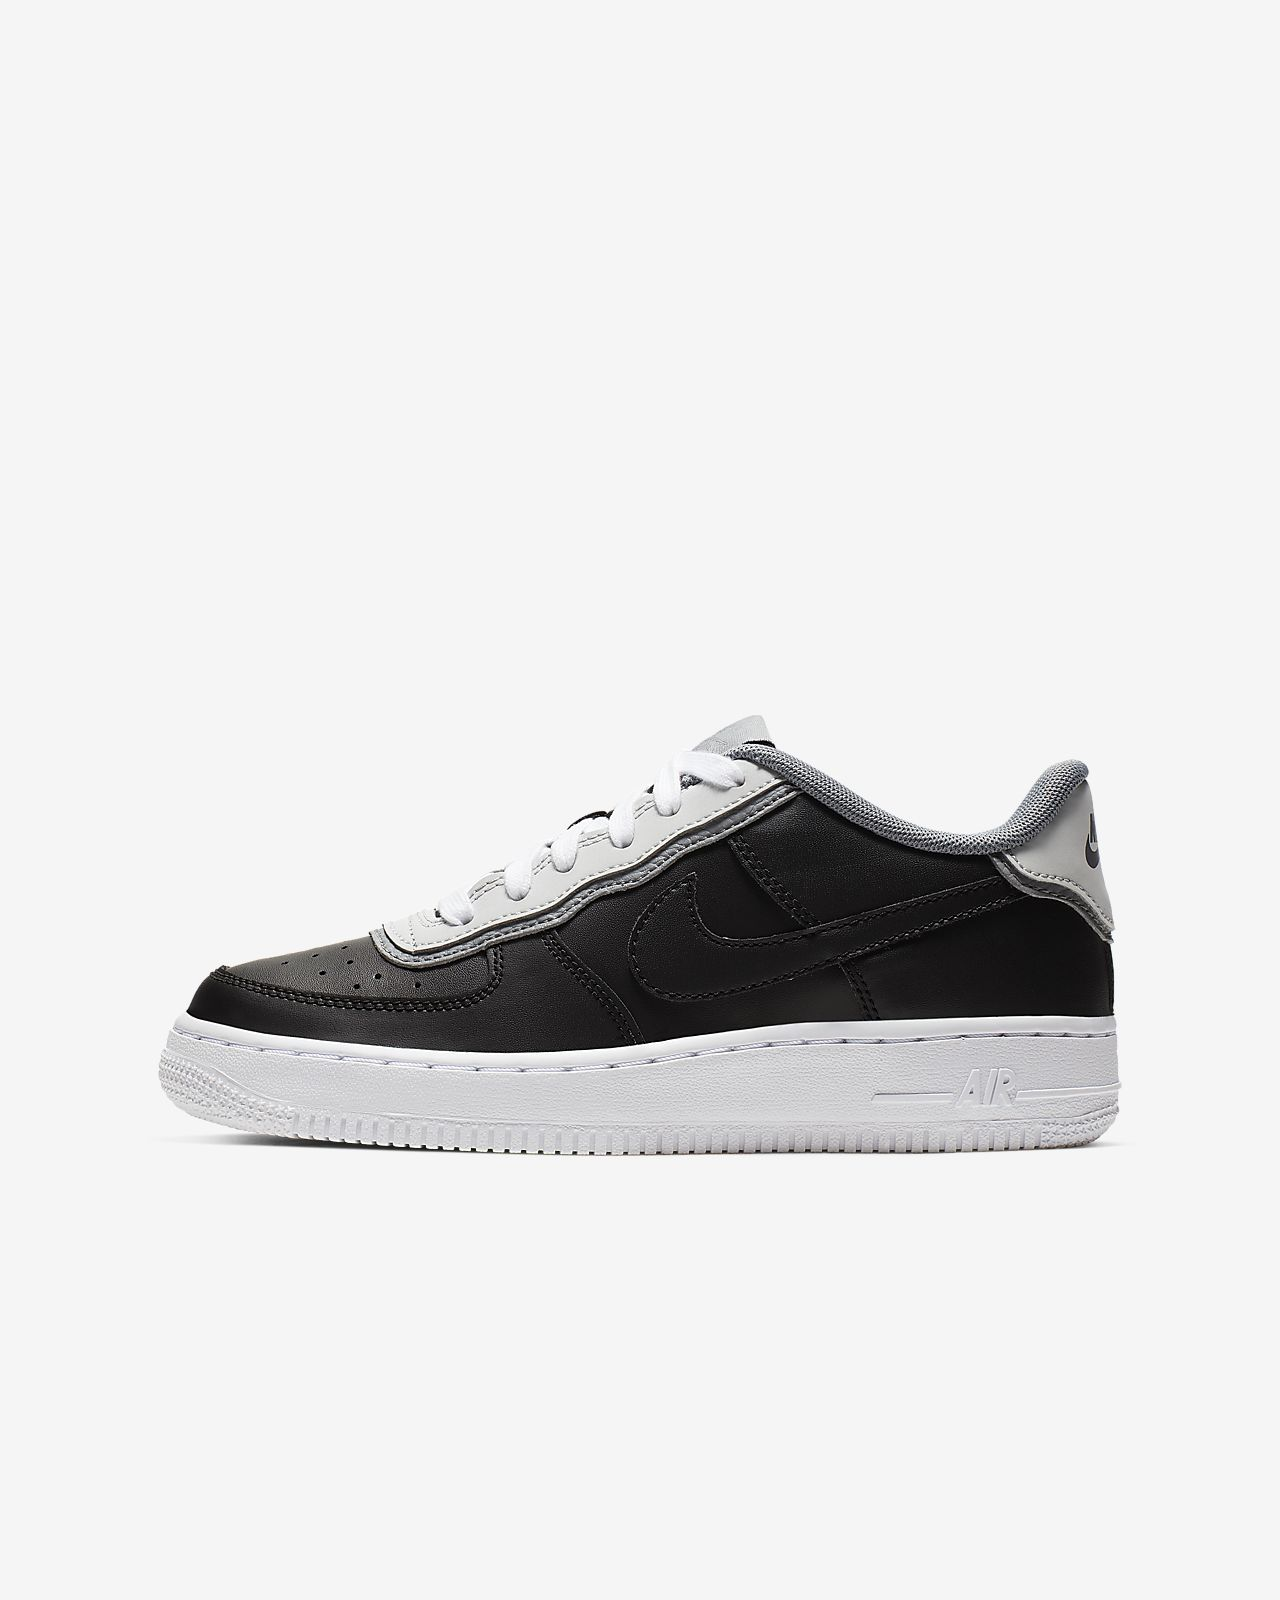 Nike Air Force 1 LV8 1 DBL Big Kids' Shoe